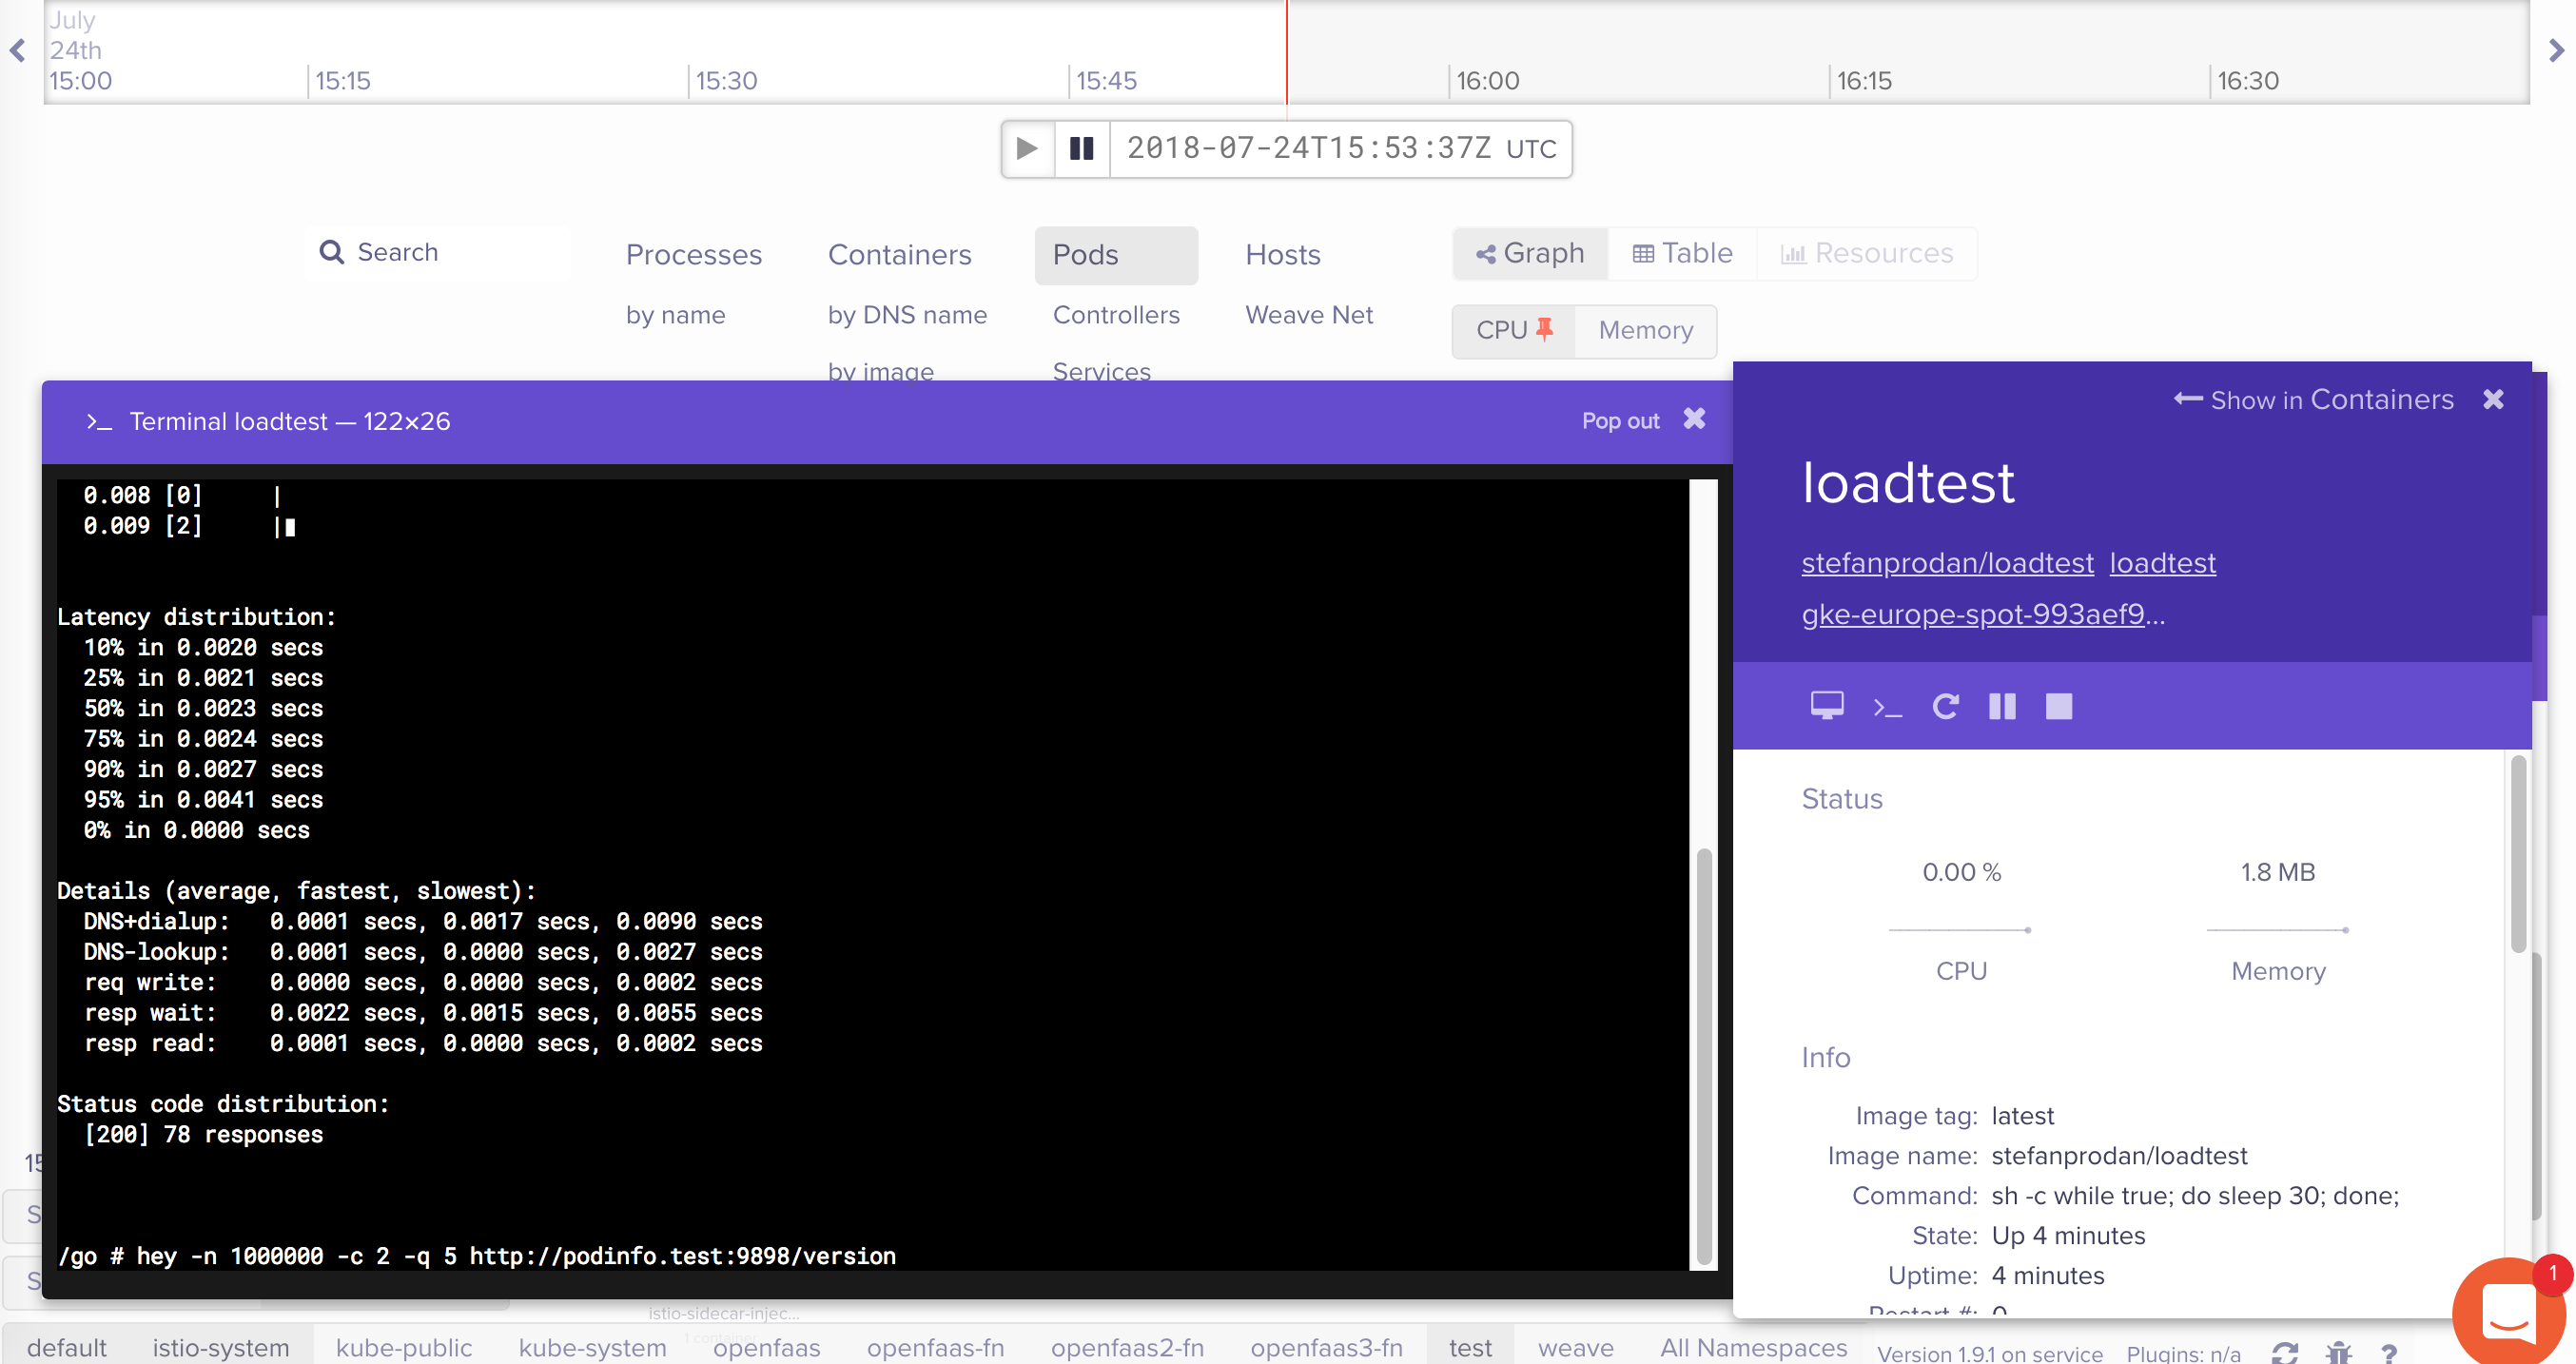 loadtest-istio.png